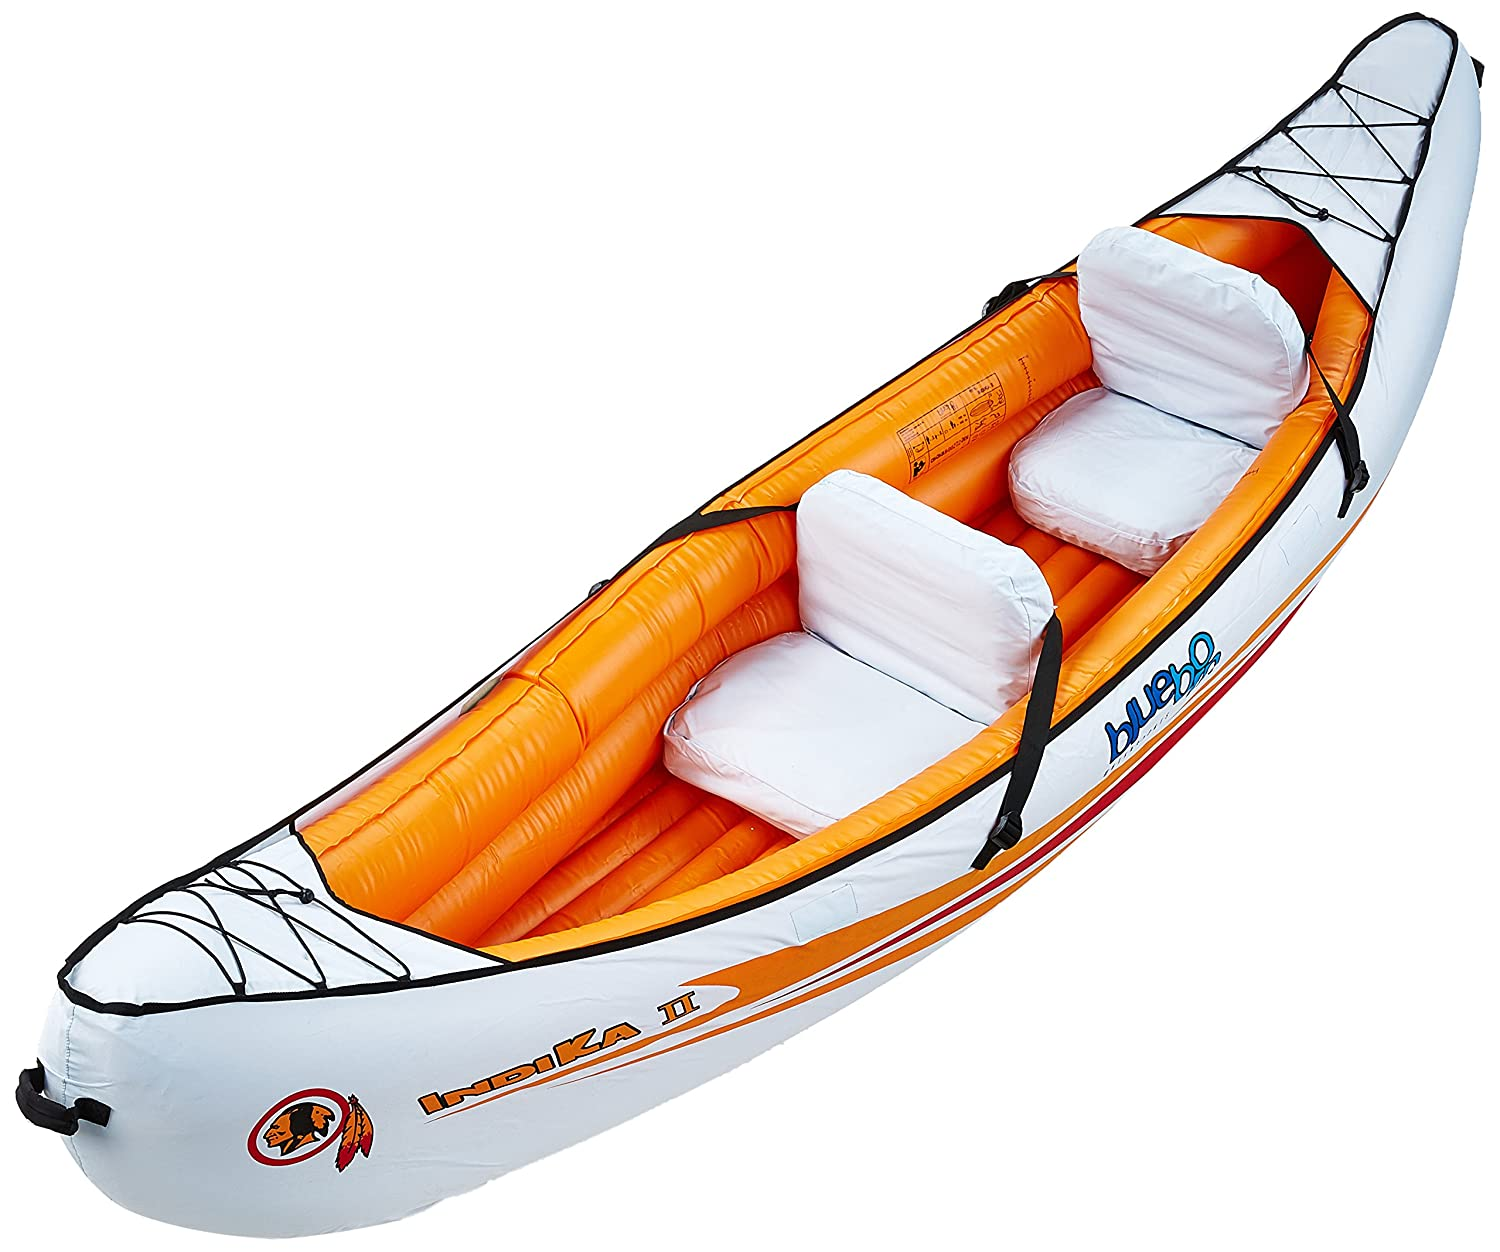 Blueborn Boat Indika 2 - 2 person canoe with nylon hull 325x80cm (load capacity 165kg) 520590 520590_hellblau/orange